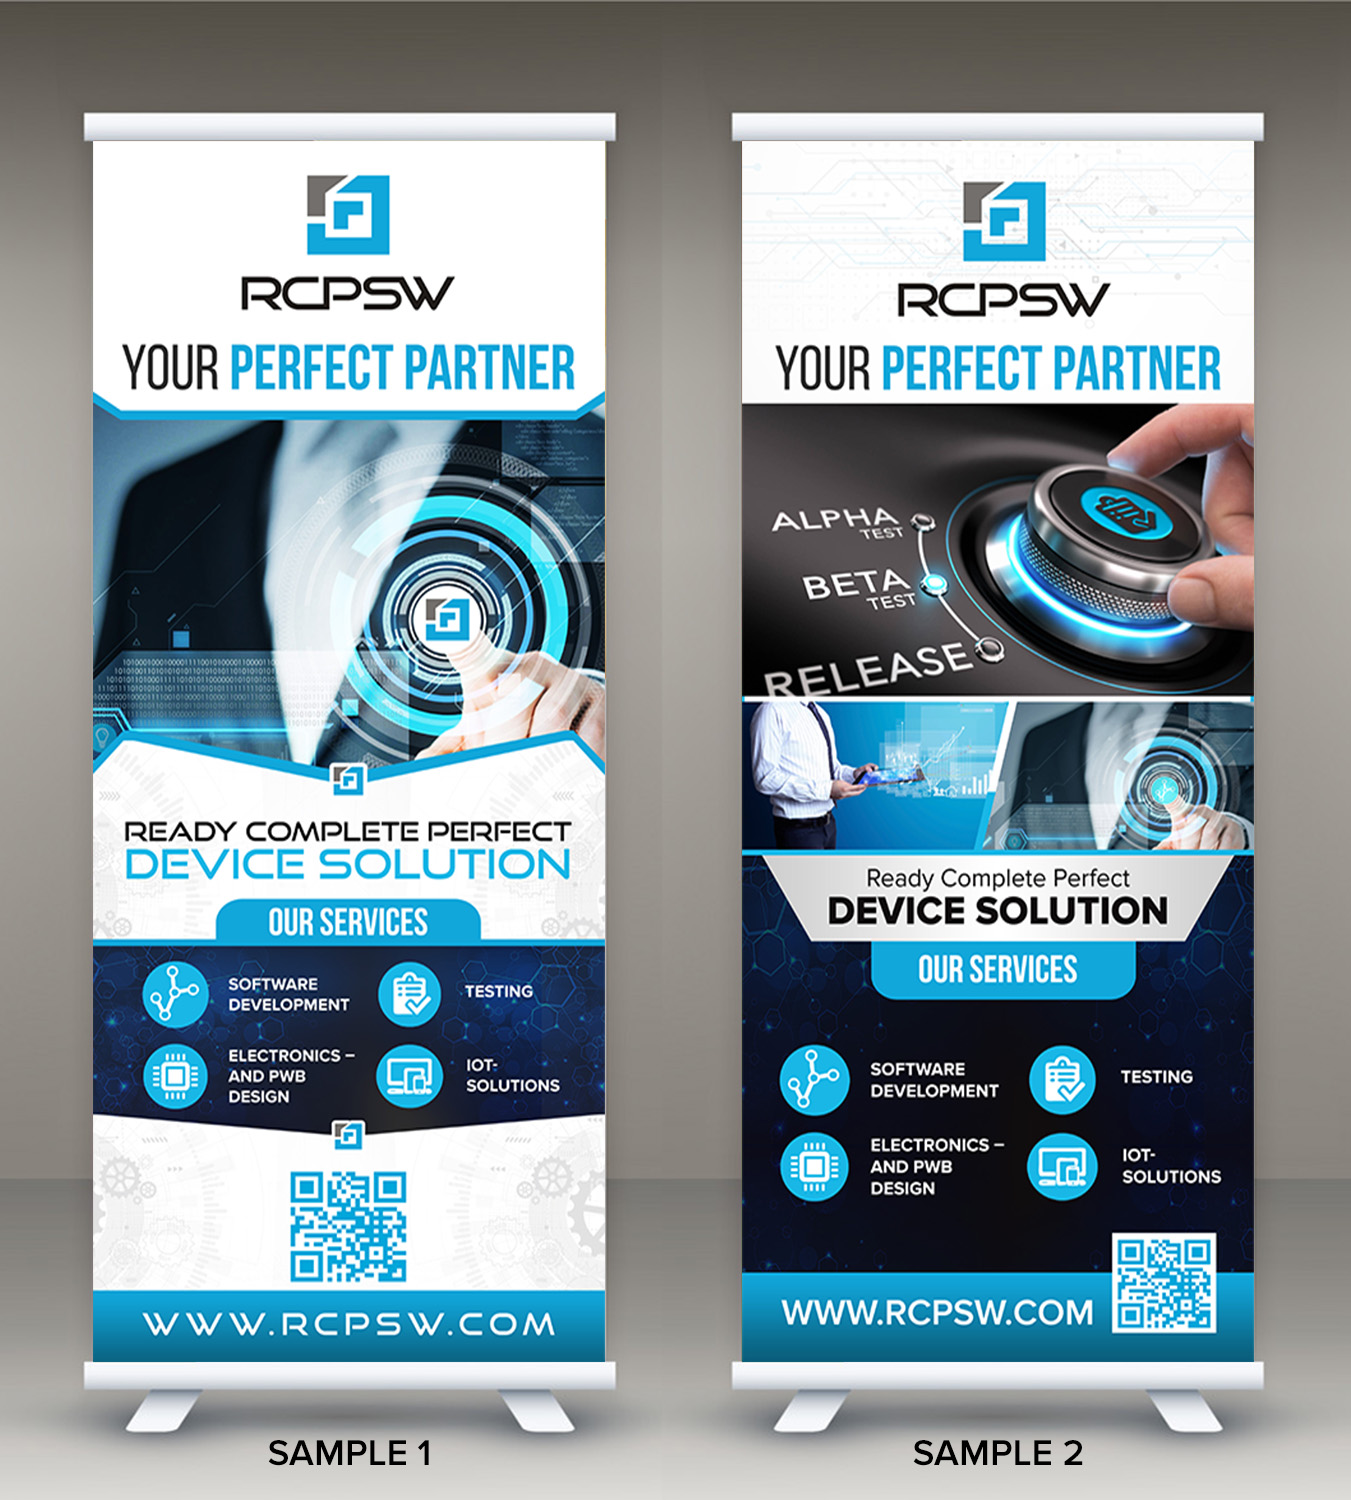 Professional Masculine It Professional Poster Design For Rcp Software By Sd Webcreation Design 21179329